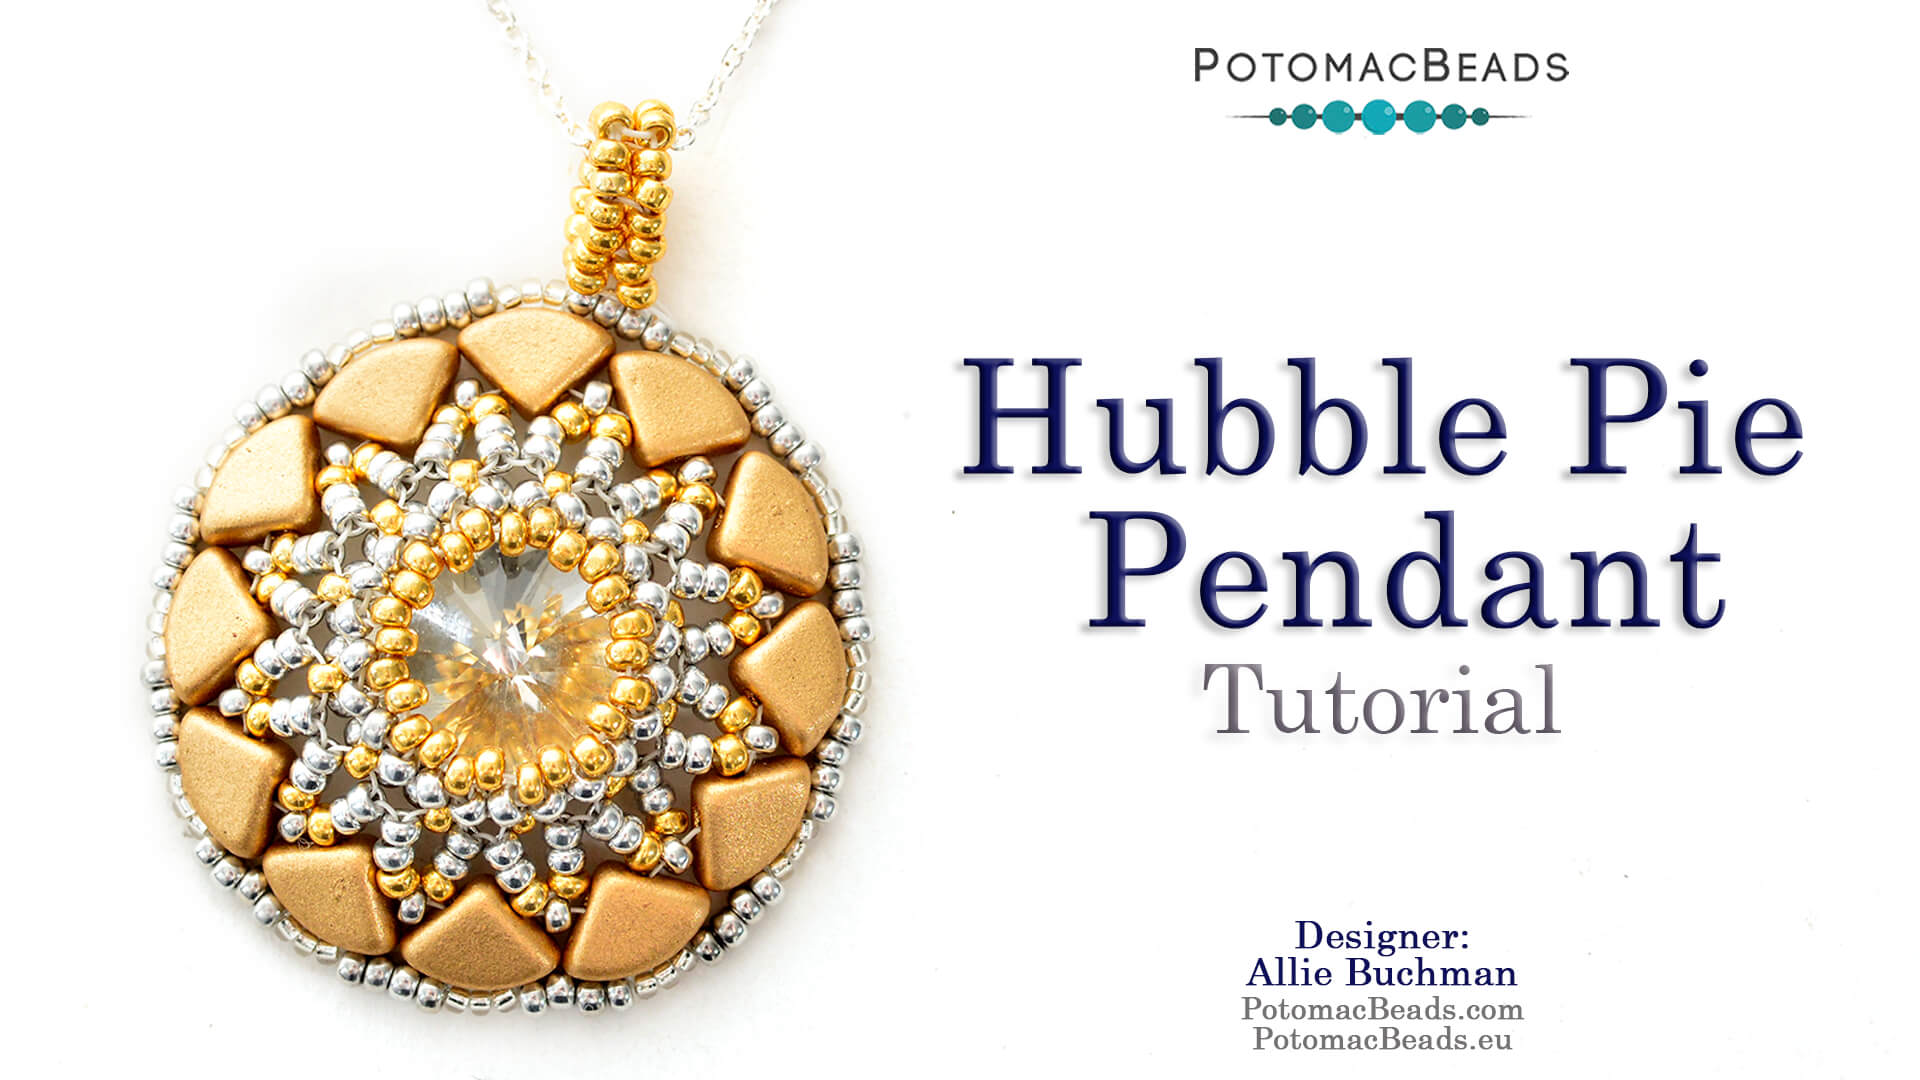 How to Bead / Videos Sorted by Beads / QuadBow & PieDuo Bead Videos / Hubble Pie Pendant Tutorial